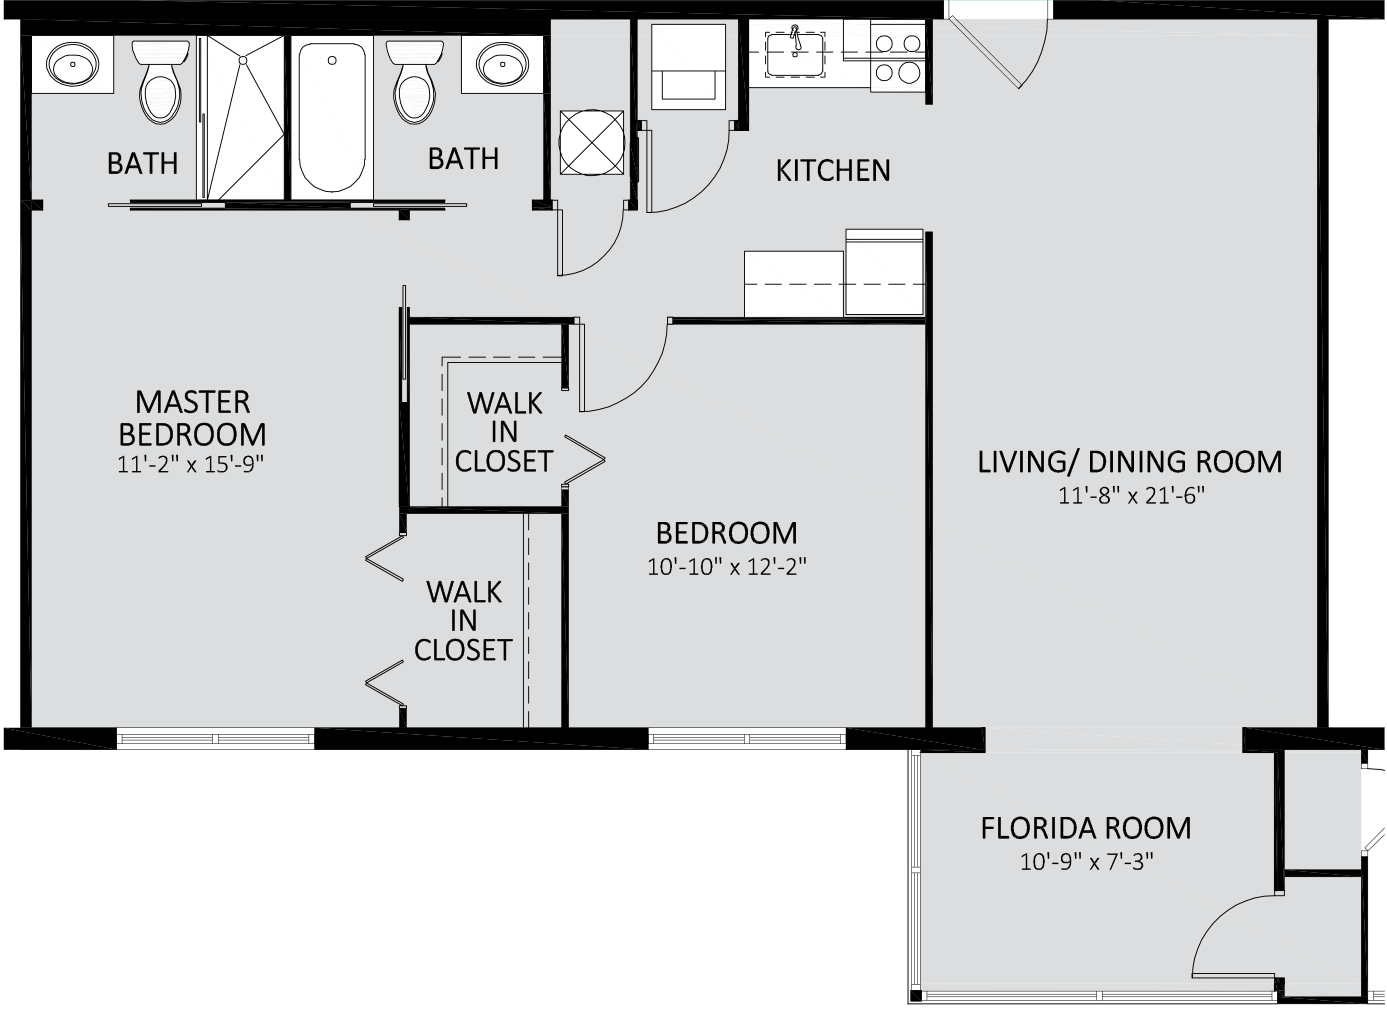 SAE Ocean Breeze GHJKL Traditional Two Bedroom 923 Sq Ft.png